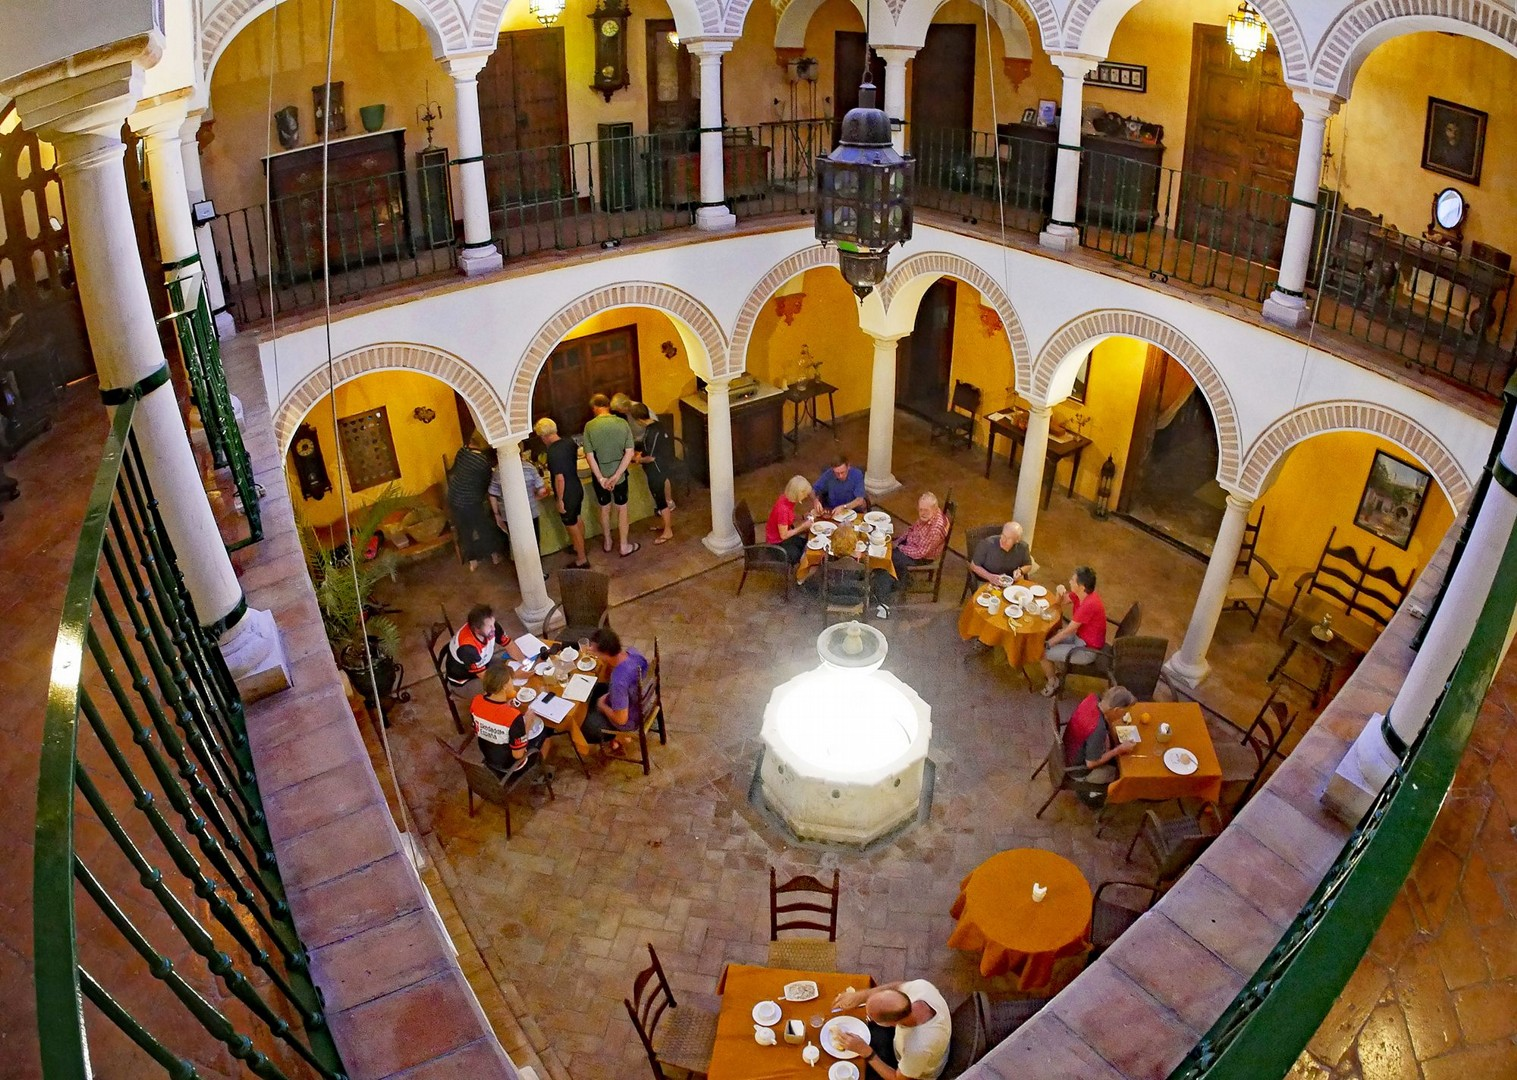 leisure-cycling-holiday-in-spain-granada-to-seville.jpg - Spain - Granada to Seville - Leisure Cycling